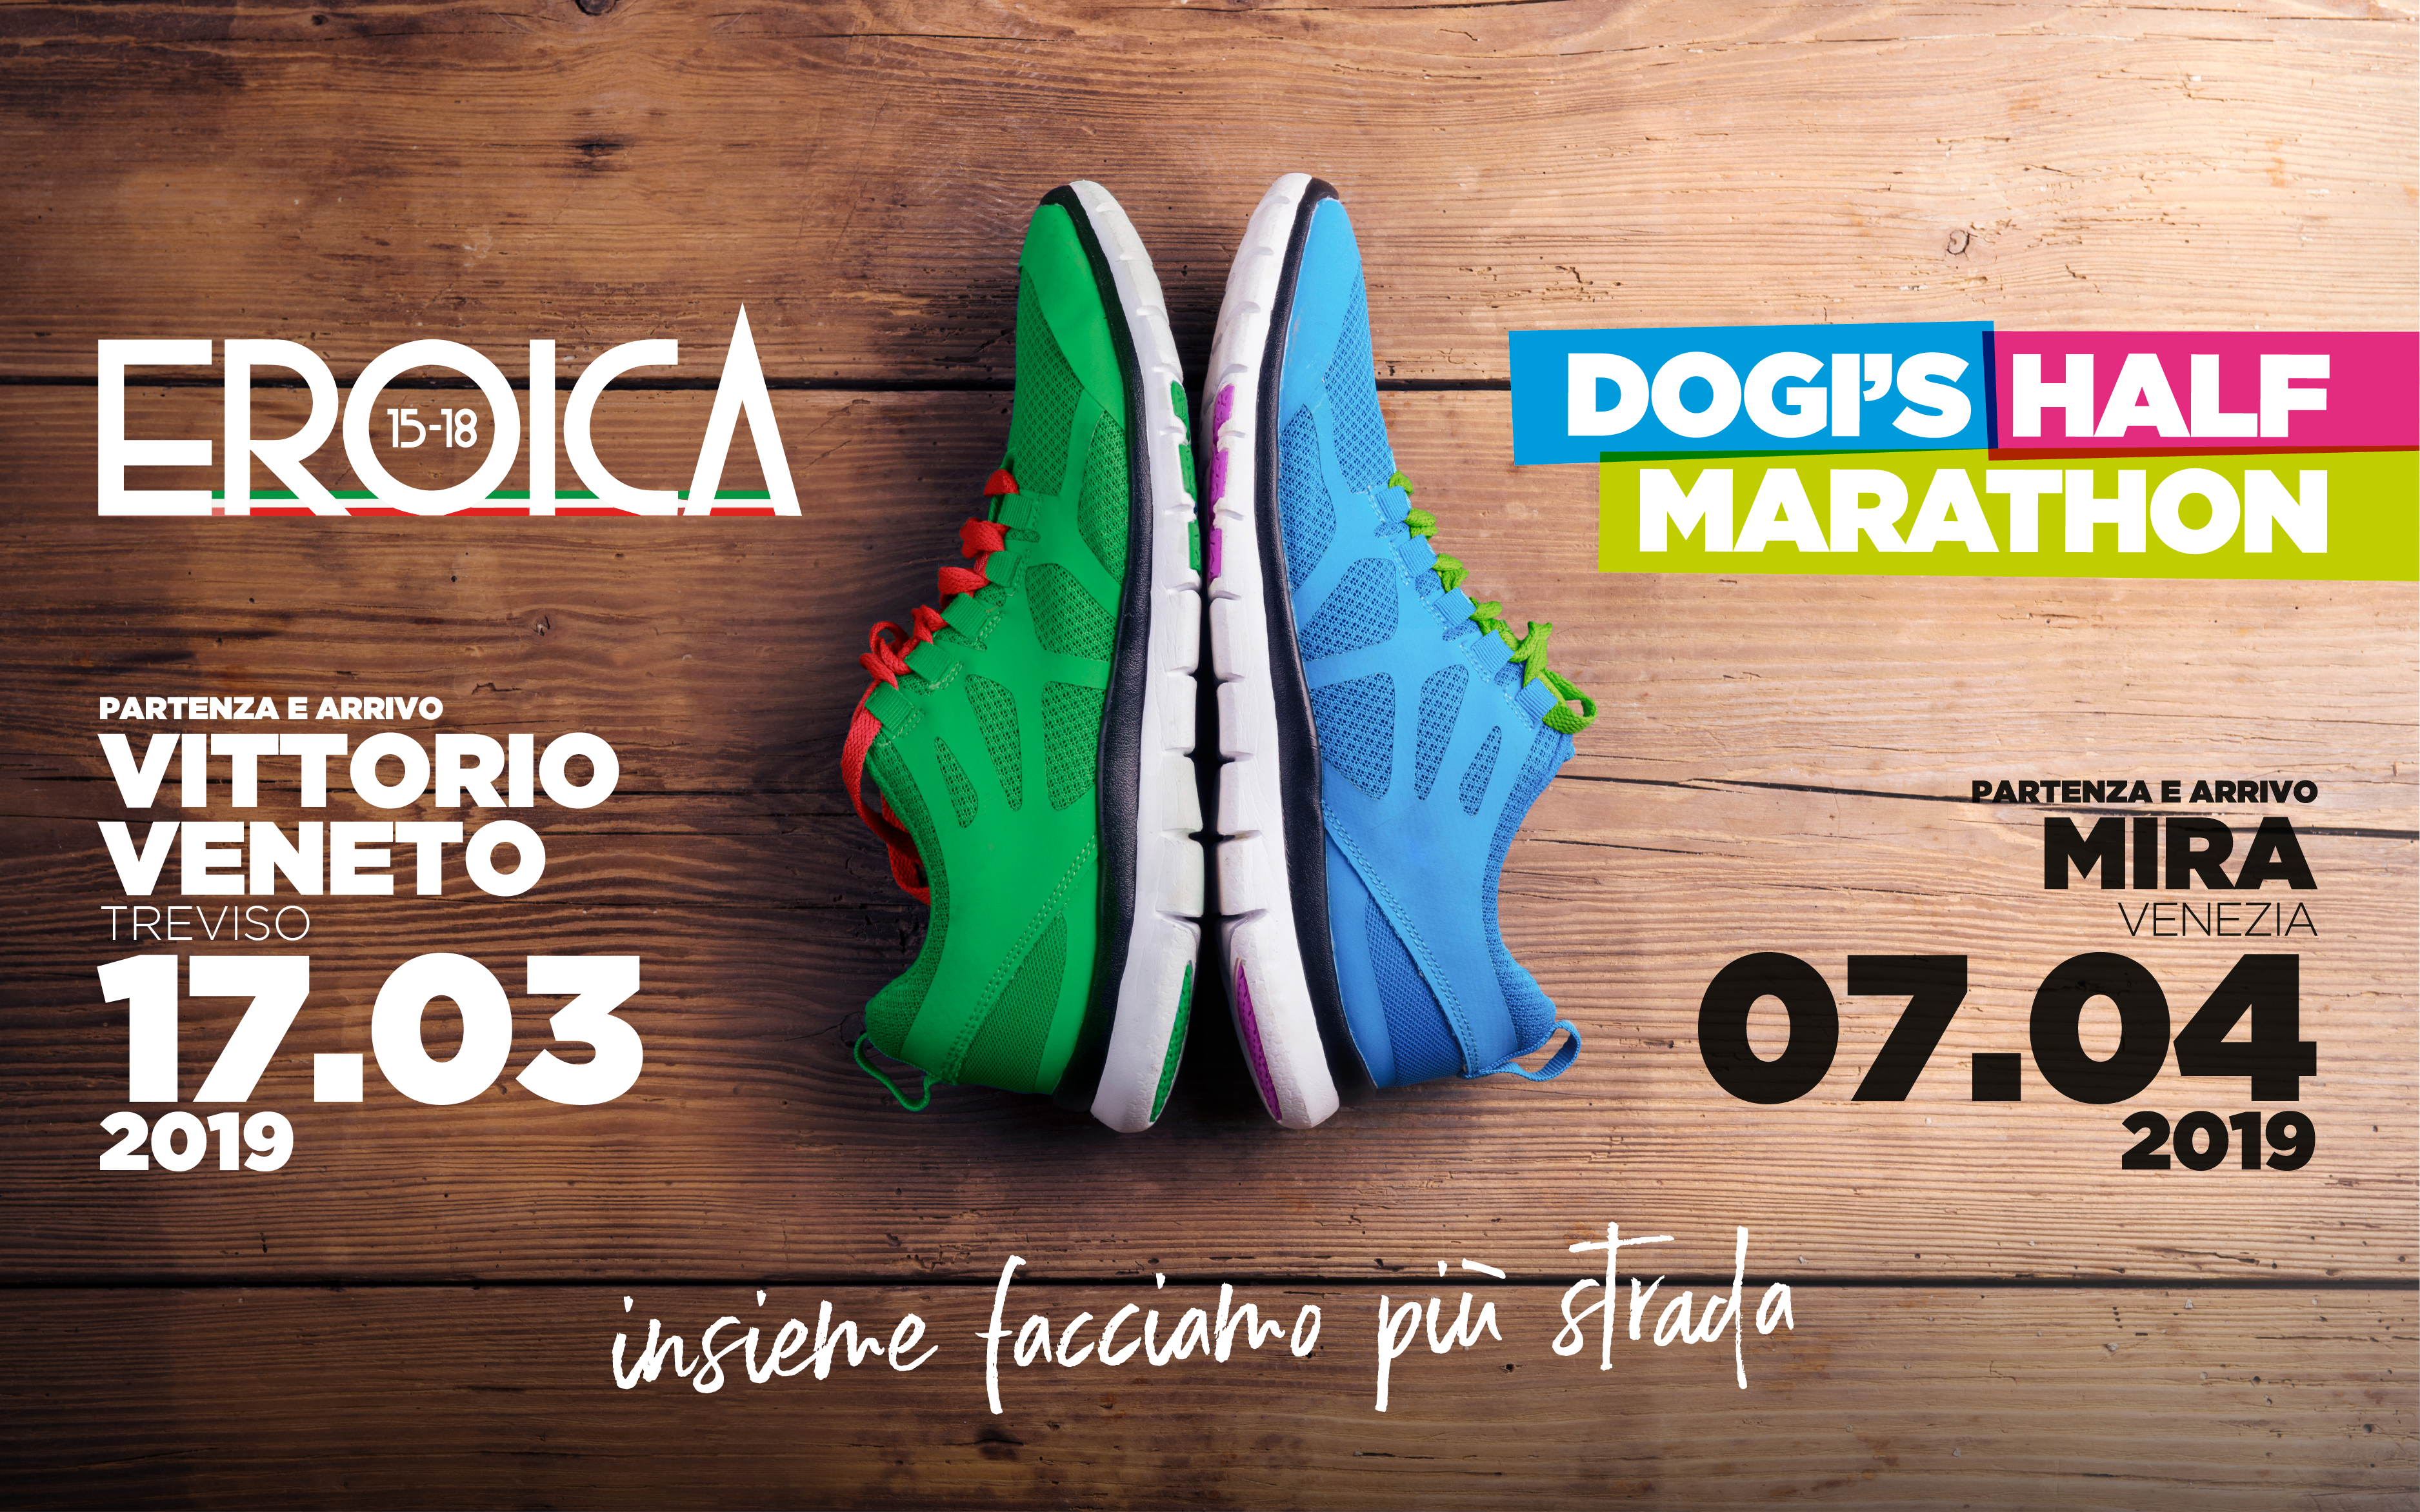 Dogis_Eroica